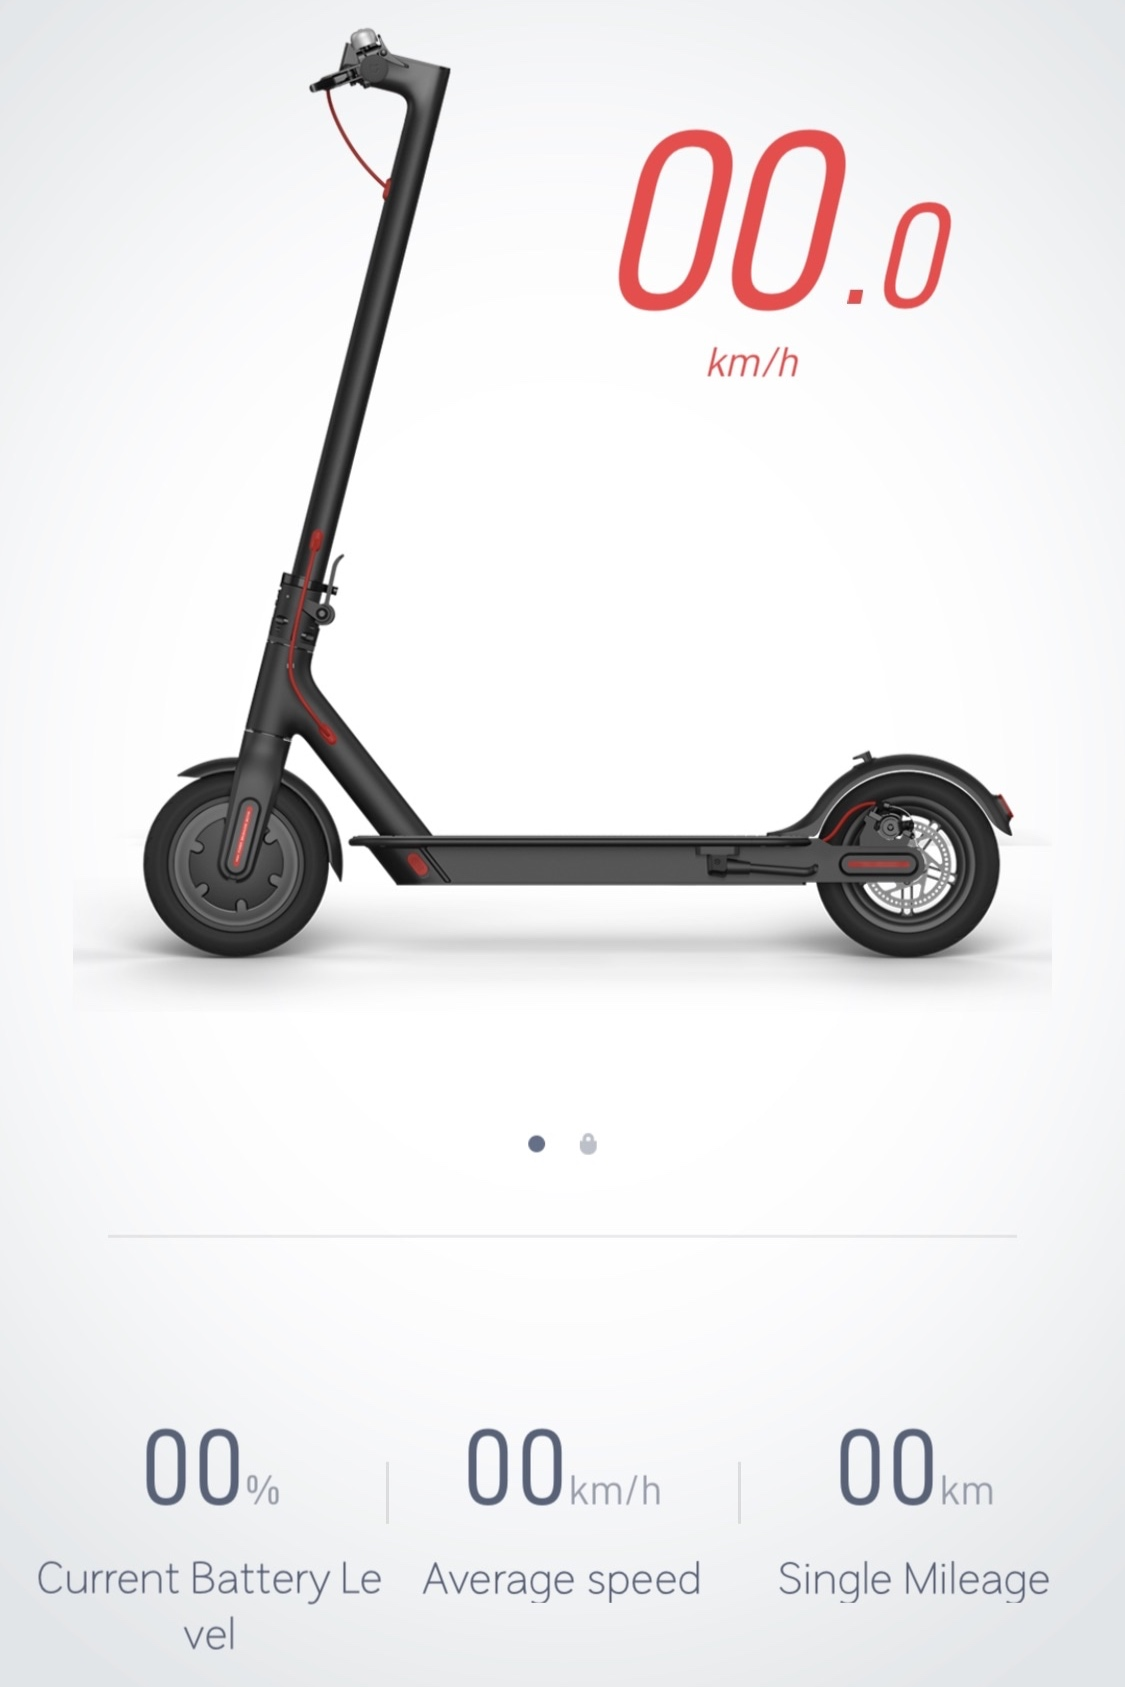 Interface for the scooter in the Xiaomi Mi Home app